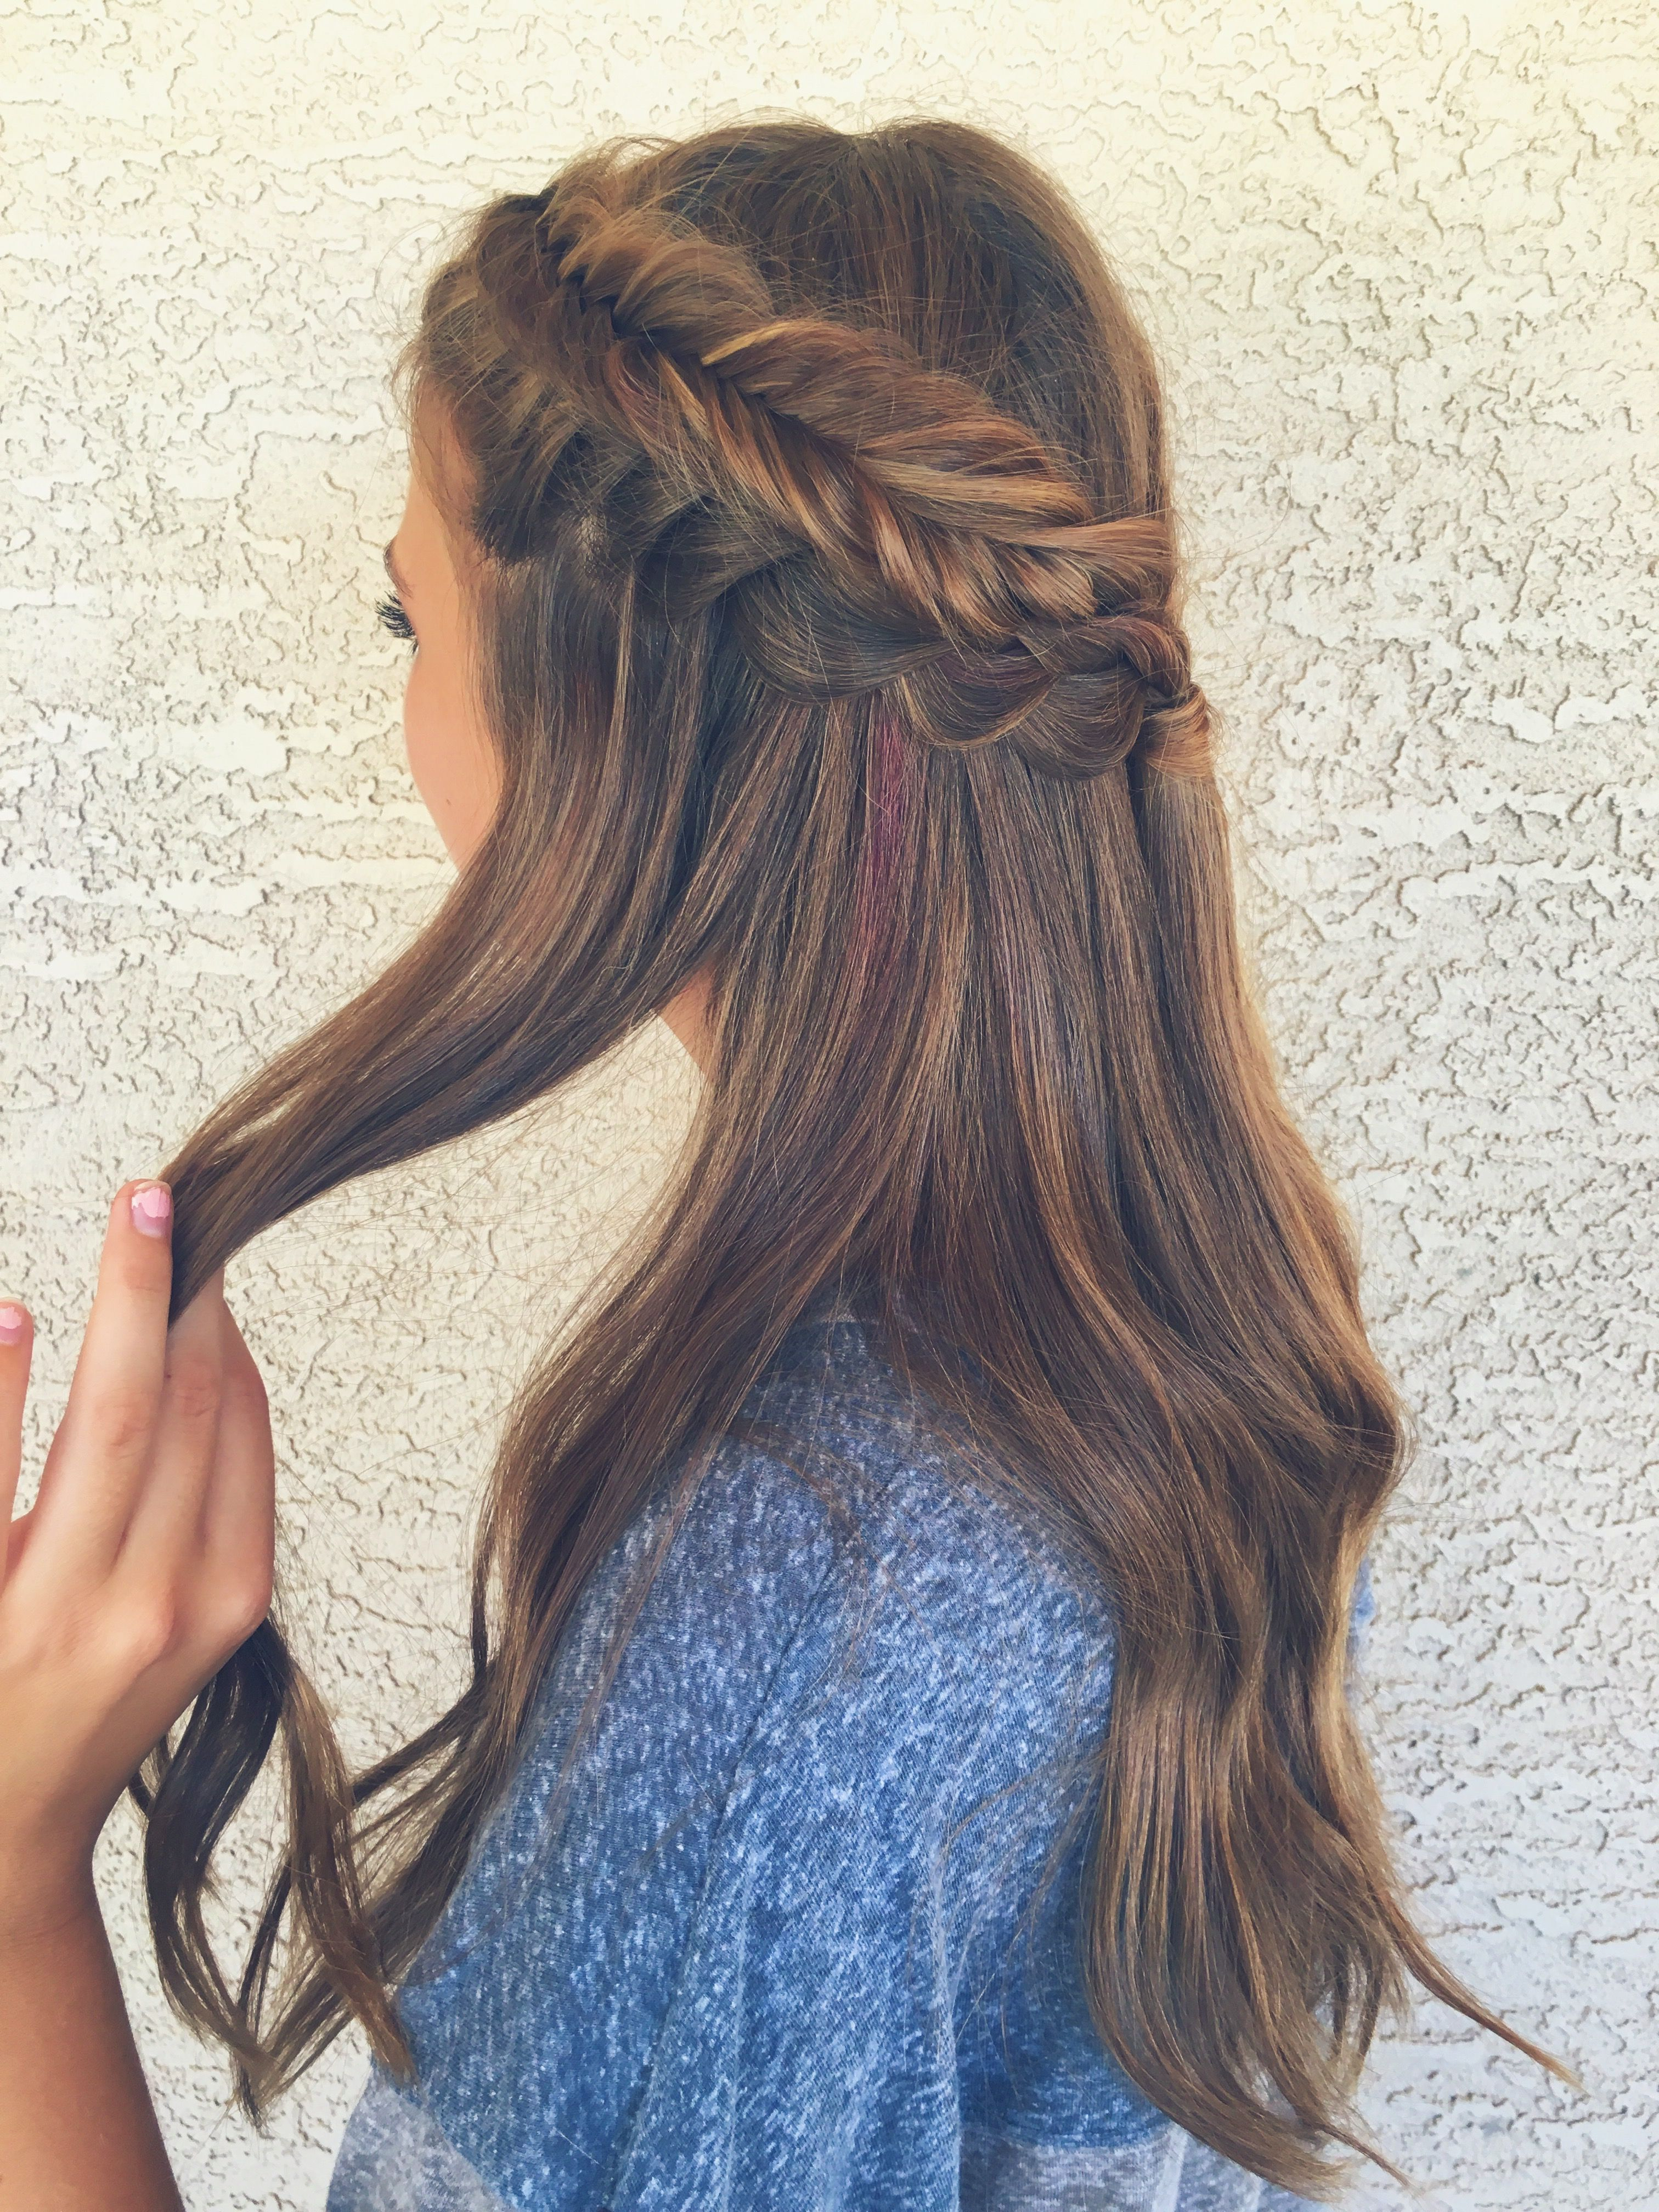 Spiral Curls With French Braided Bangs Curled Hair With Braid Braided Headband Hairstyle Braided Prom Hair